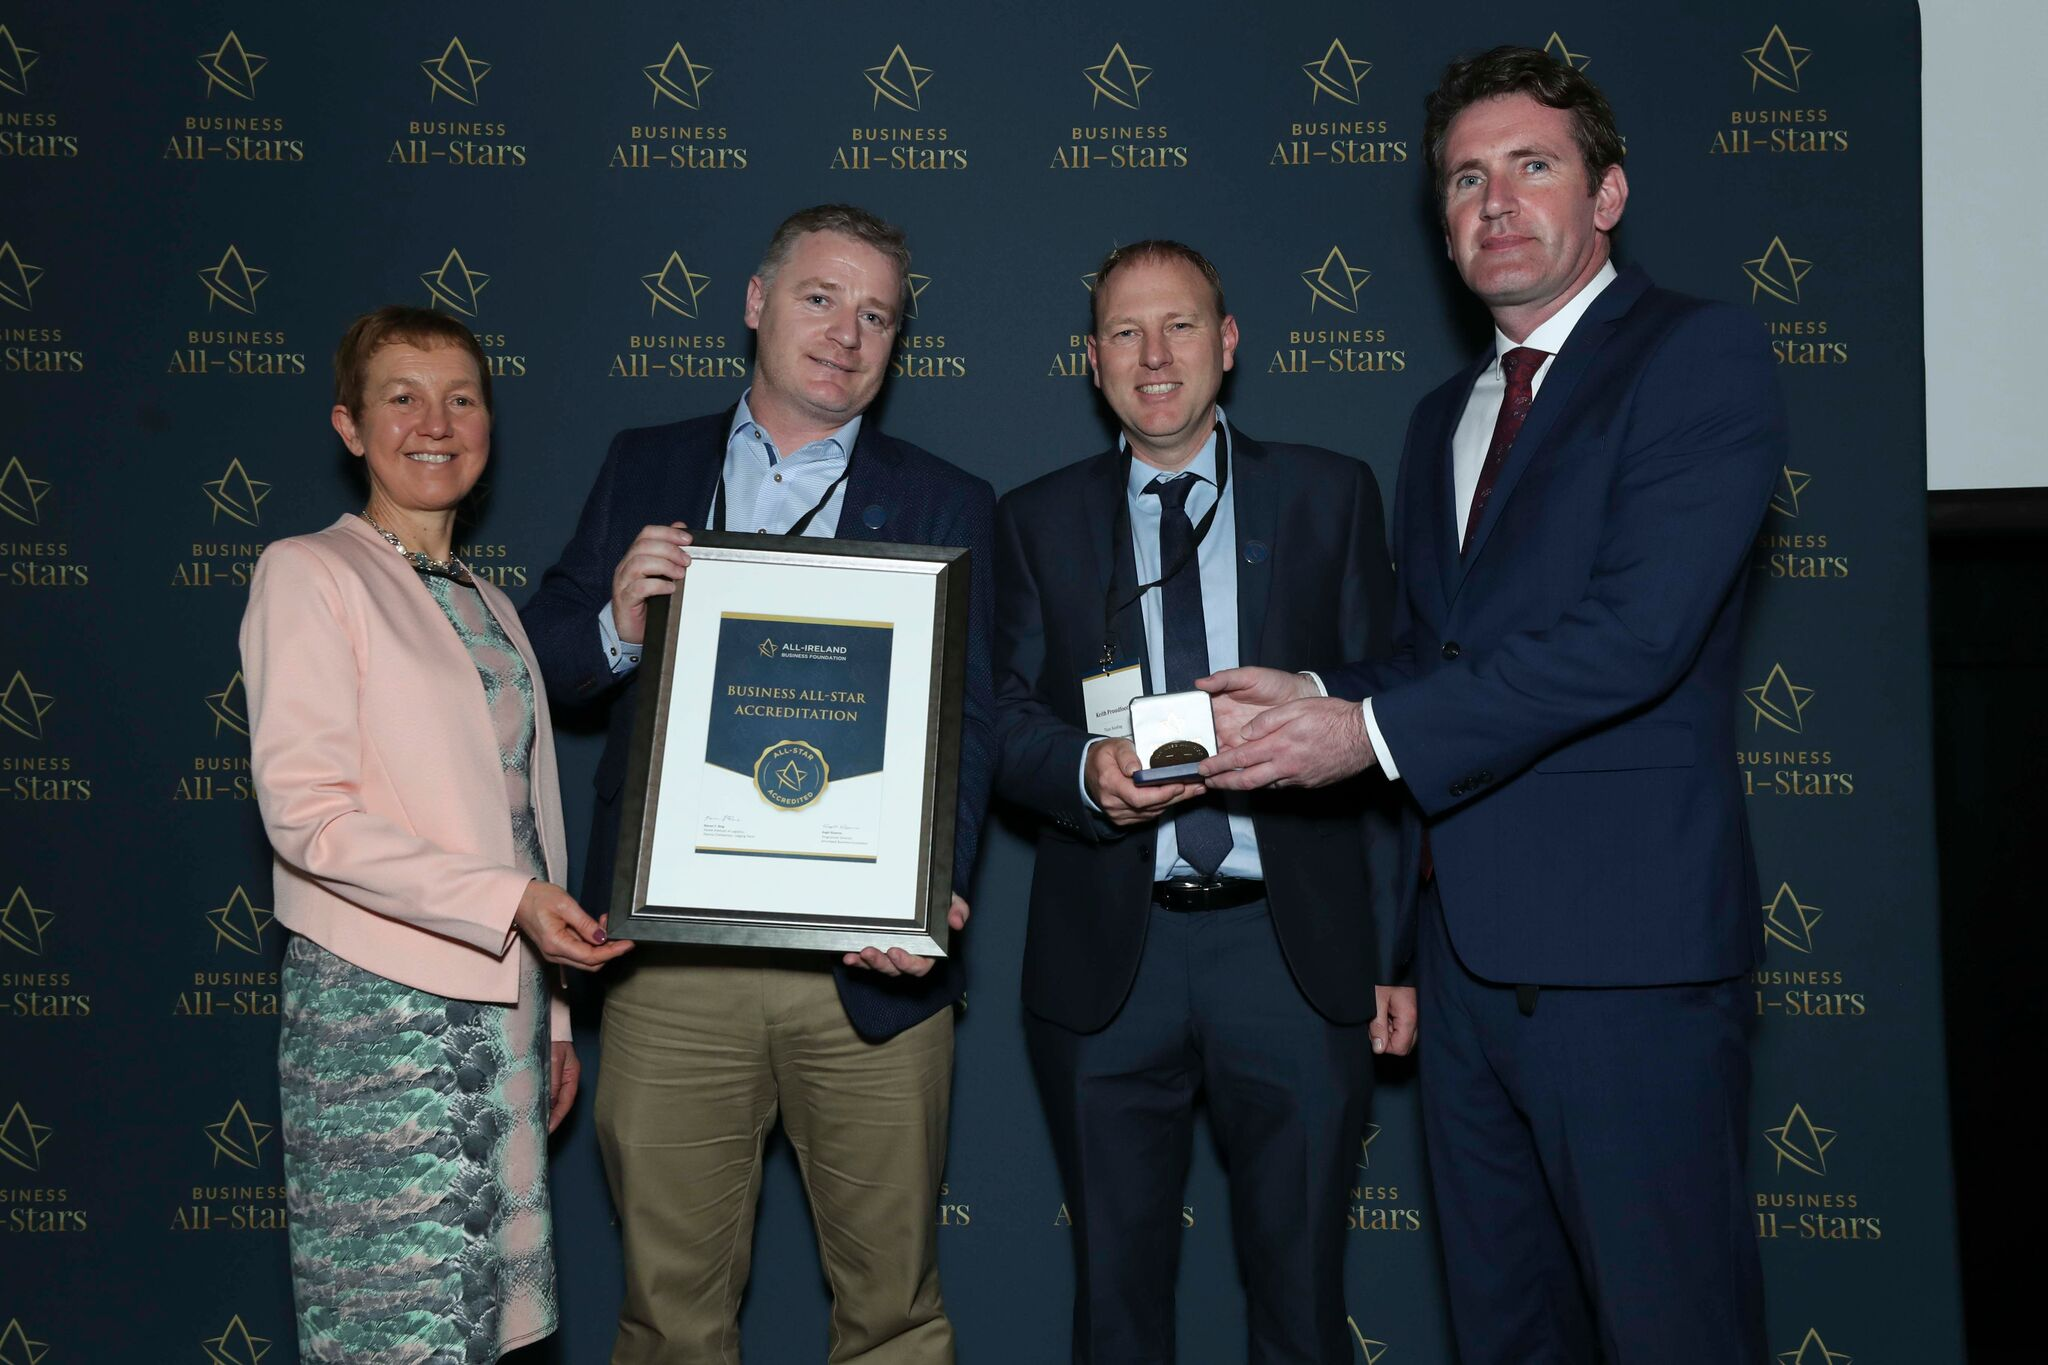 Keith Proudfoot and Stephen Kennedy - Titan Roofing receiving Business All-Star Accreditation at Croke Park from Dr Briga Hynes, Kemmy Business School, University of Limerick and Senator Aodhán Ó Ríordáin, Spokesperson on Education and Skills, Gaeilge and the Gaeltacht.